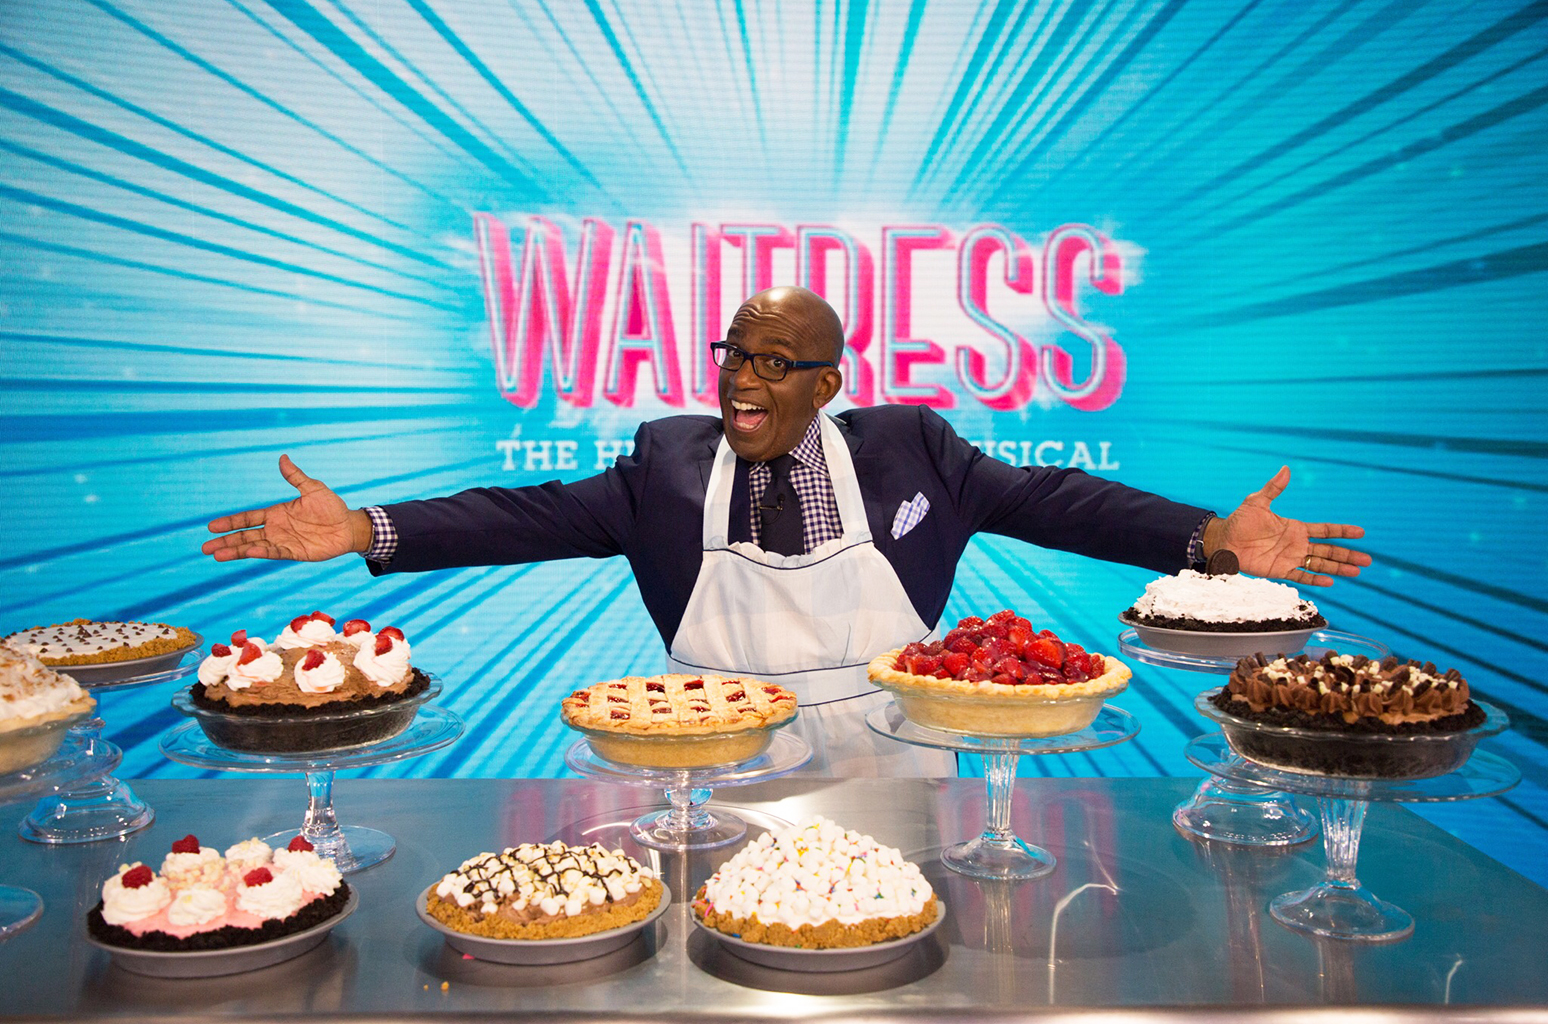 al-roker-waitress-2018-billboard-1548.jpg